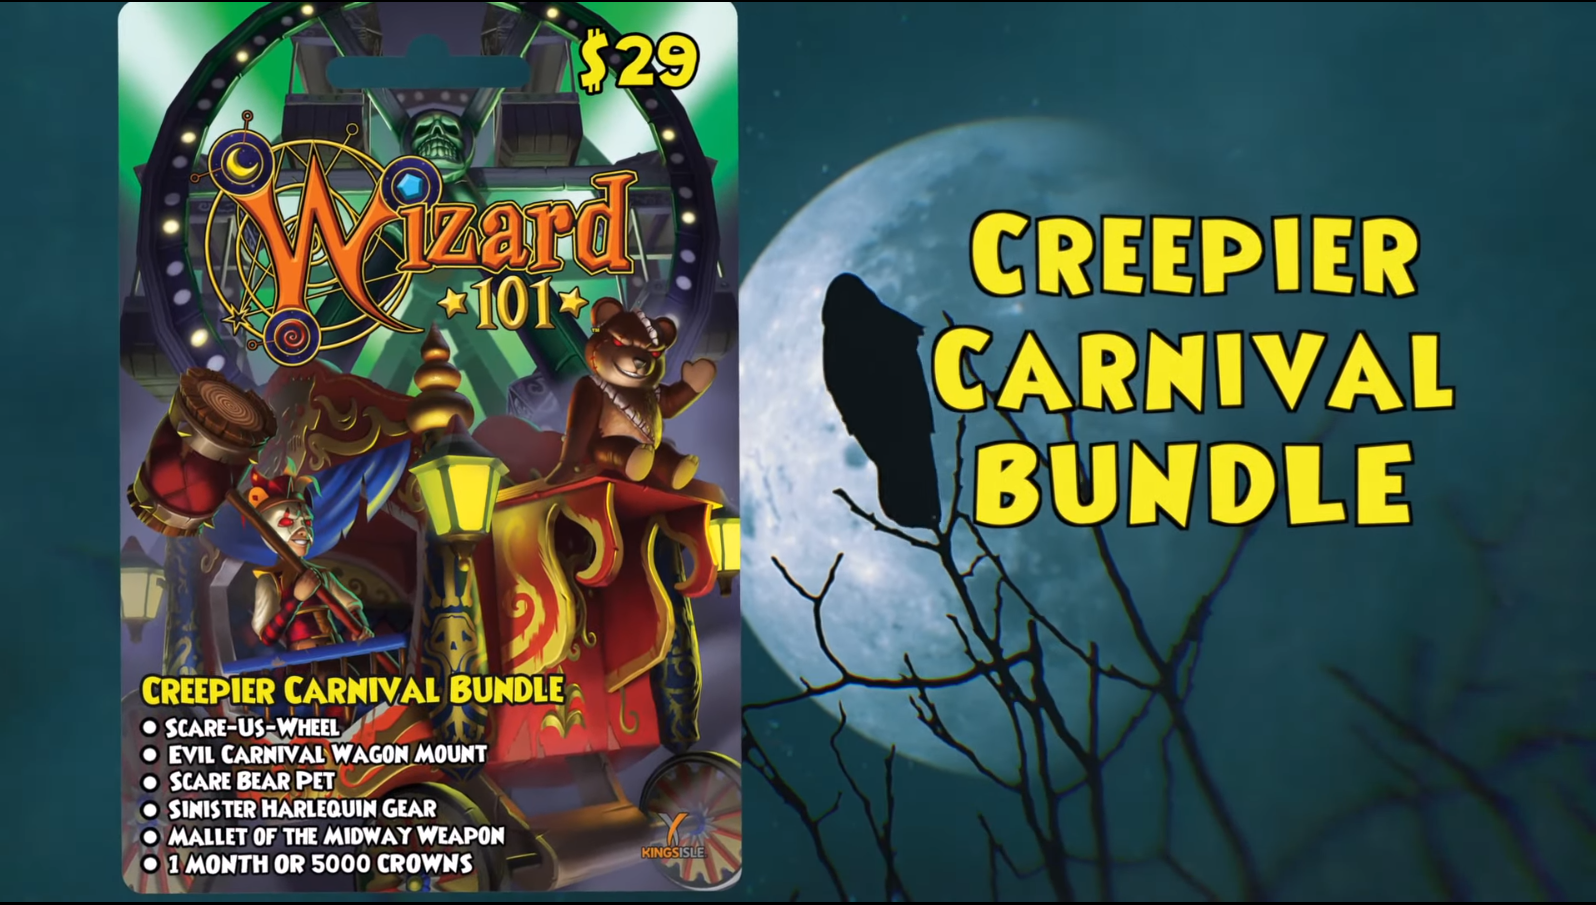 The Creepier Carnival Bundle